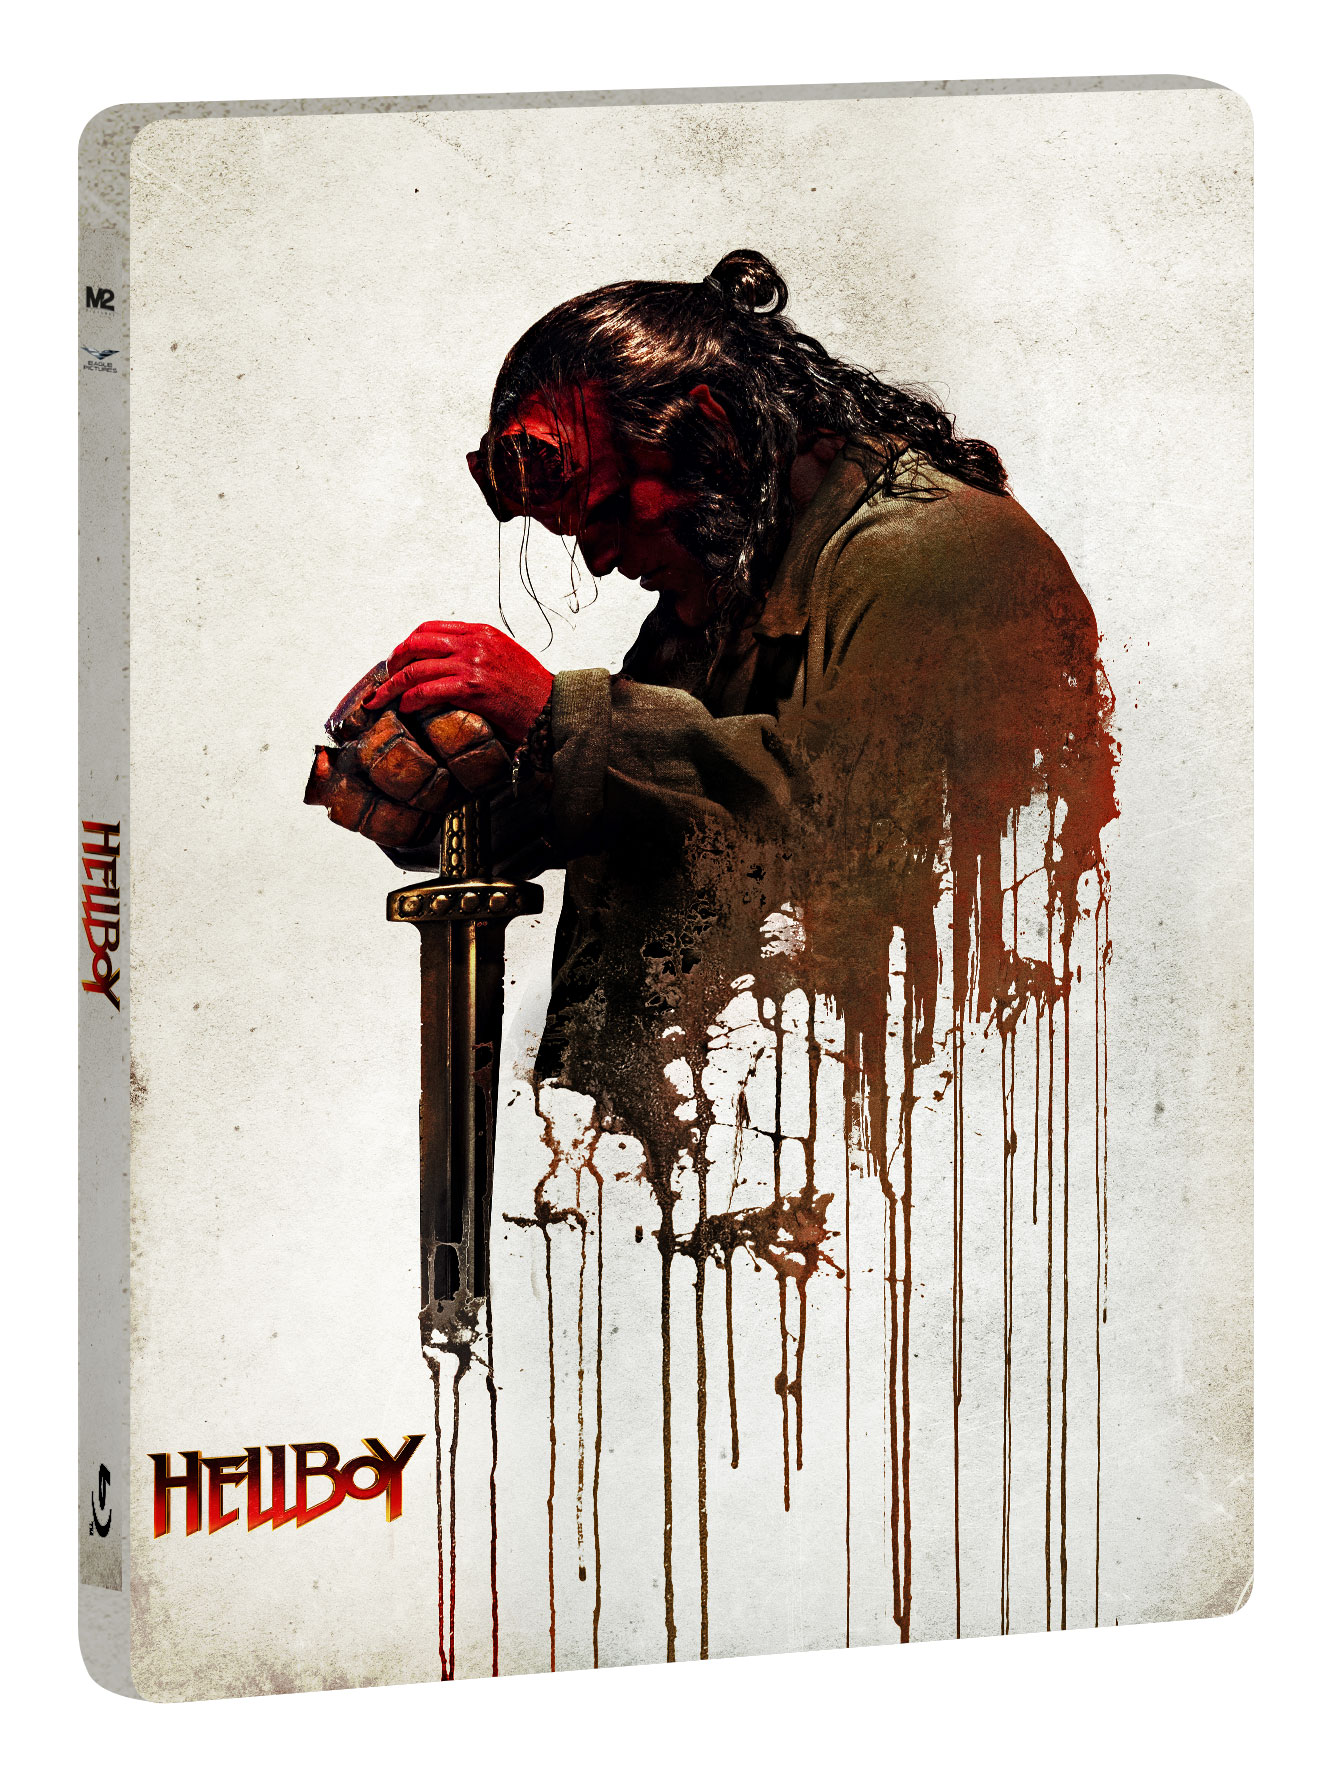 HELLBOY 2019 (LTD STEELBOOK) (BLU-RAY 4K+BLU-RAY+10 CARD DA COLL